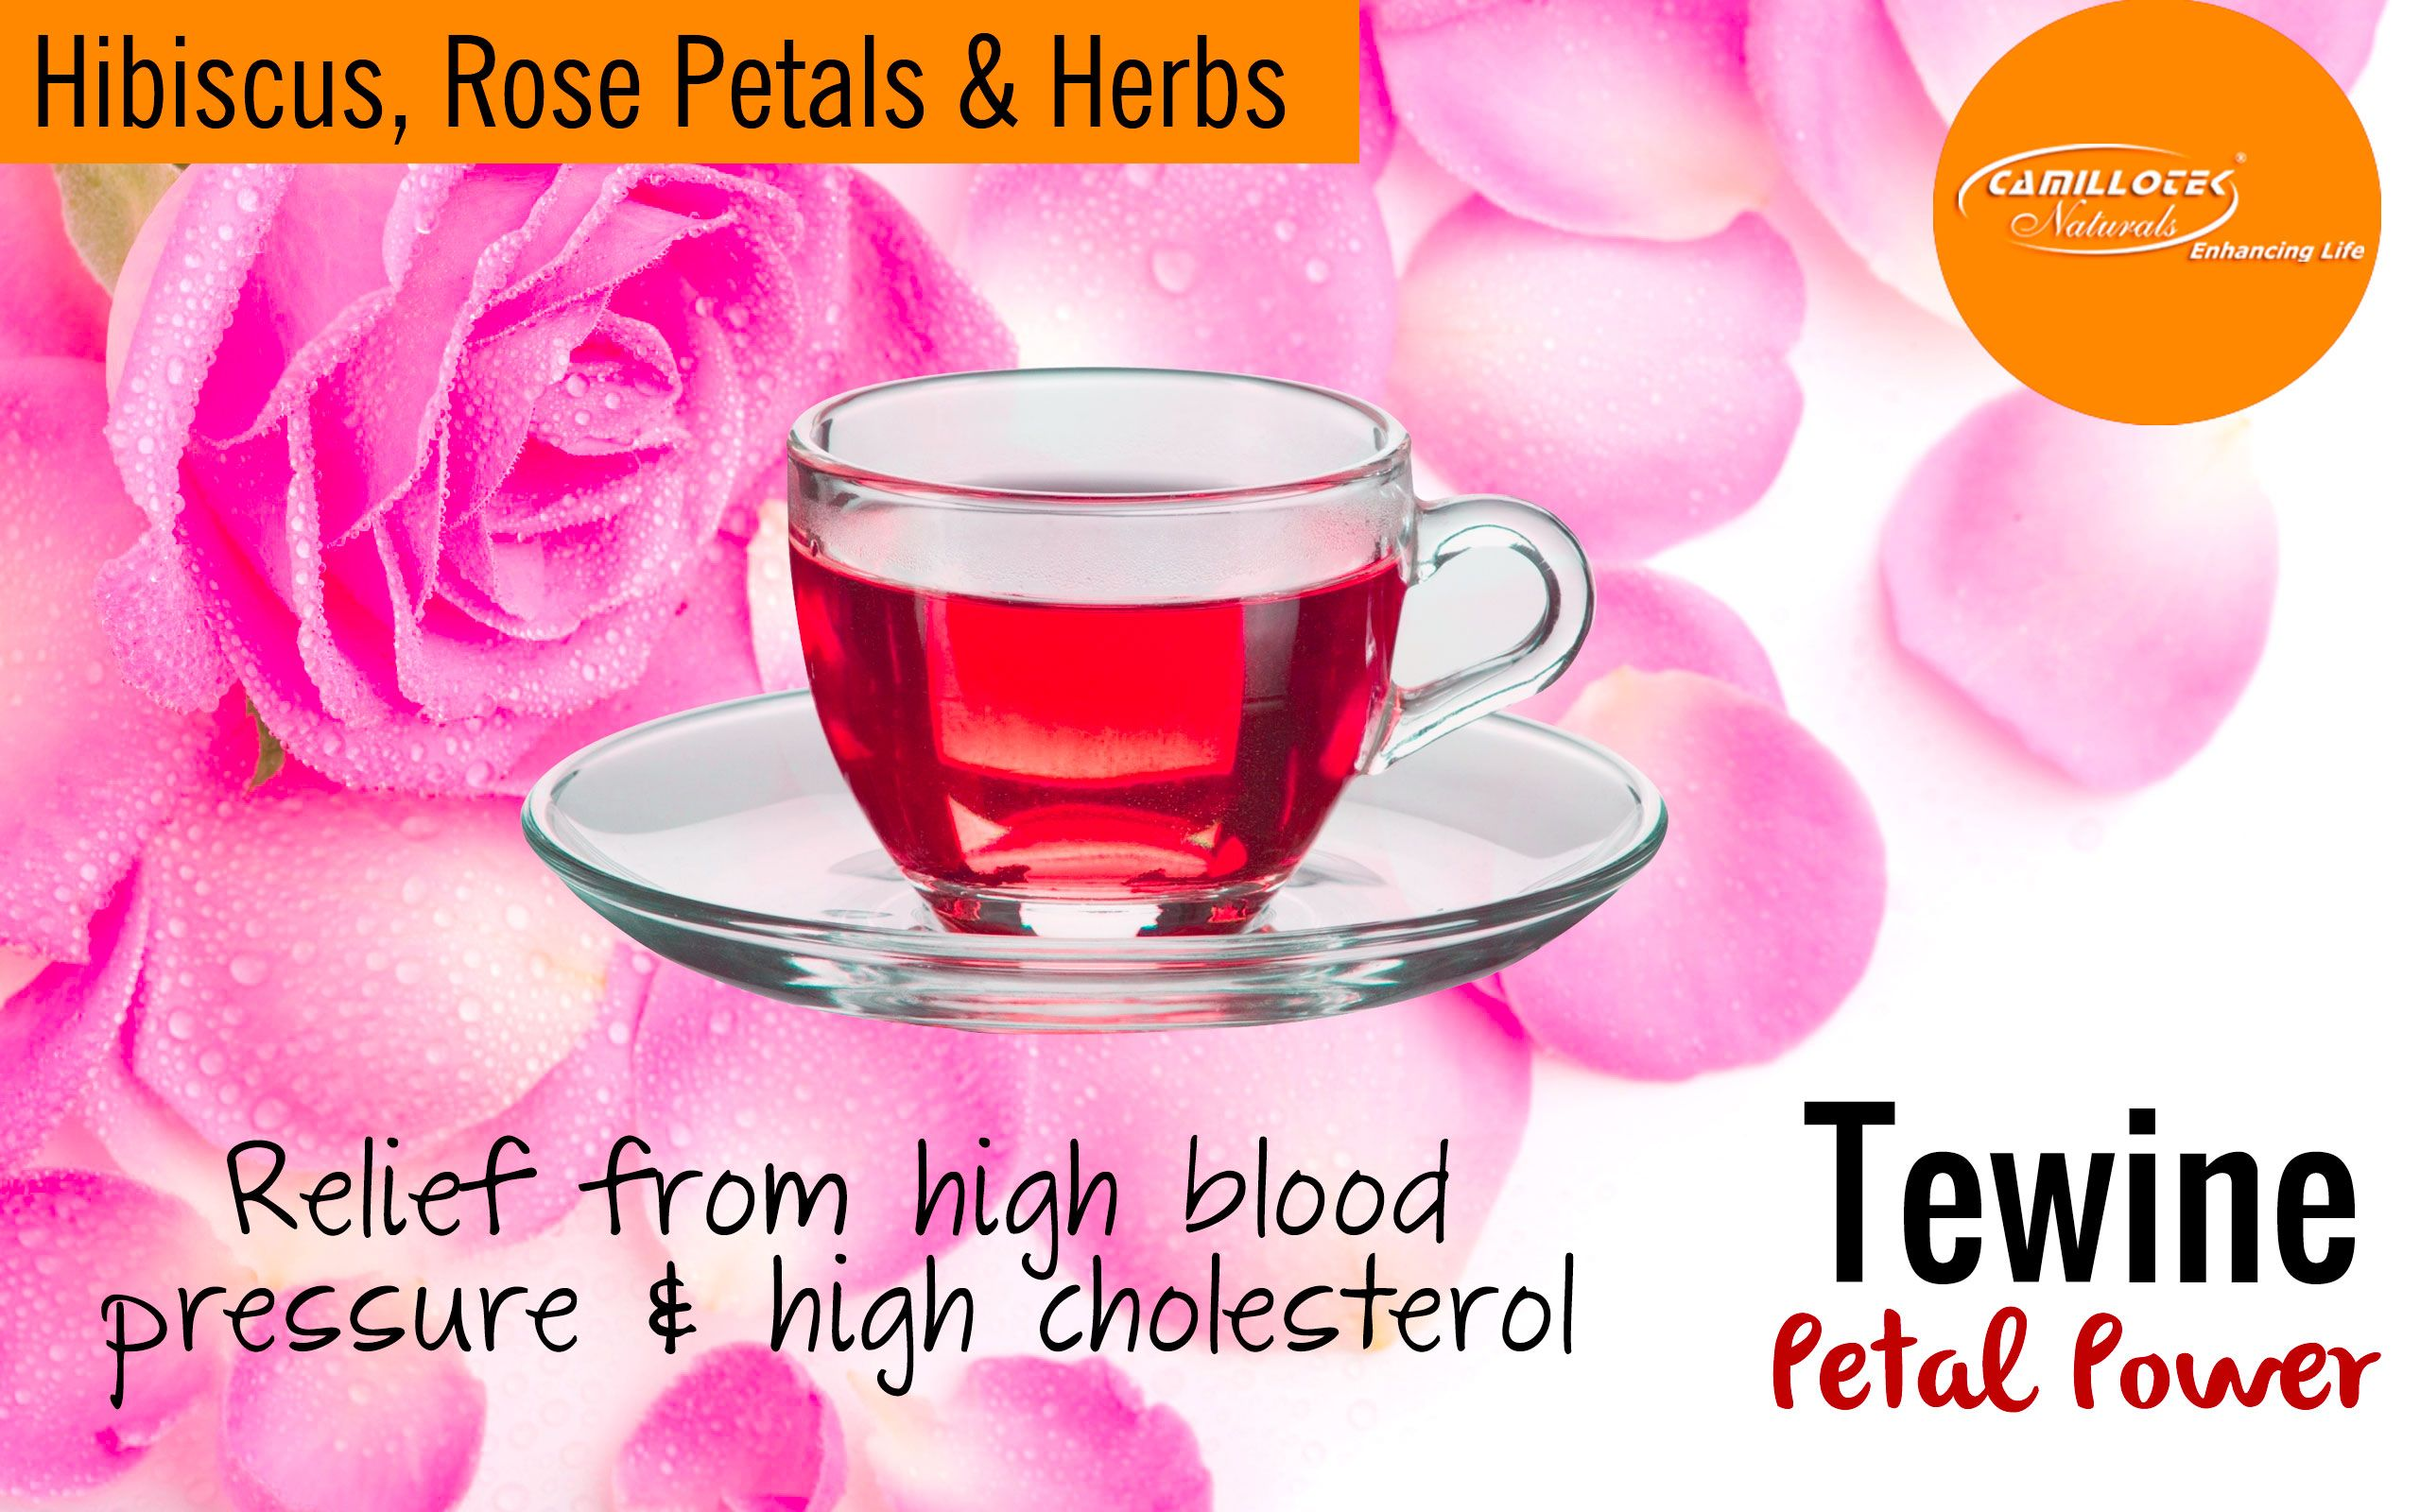 Tewine Hibiscus, Rose Petals & Herbs Blend 100% Natural Tea  Hibiscus tea is ruby red in color and has a exotic taste. No synthetic colors & sugar added for taste and color.  The health benefits of hibiscus tea Rrelief from high blood pressure and high cholesterol, as well as  digestive, immune system, and inflammatory problems.   It helps to cure liver disease and reduces the risk of cancer.   It can also speed up the metabolism and help in healthy, gradual weight loss.